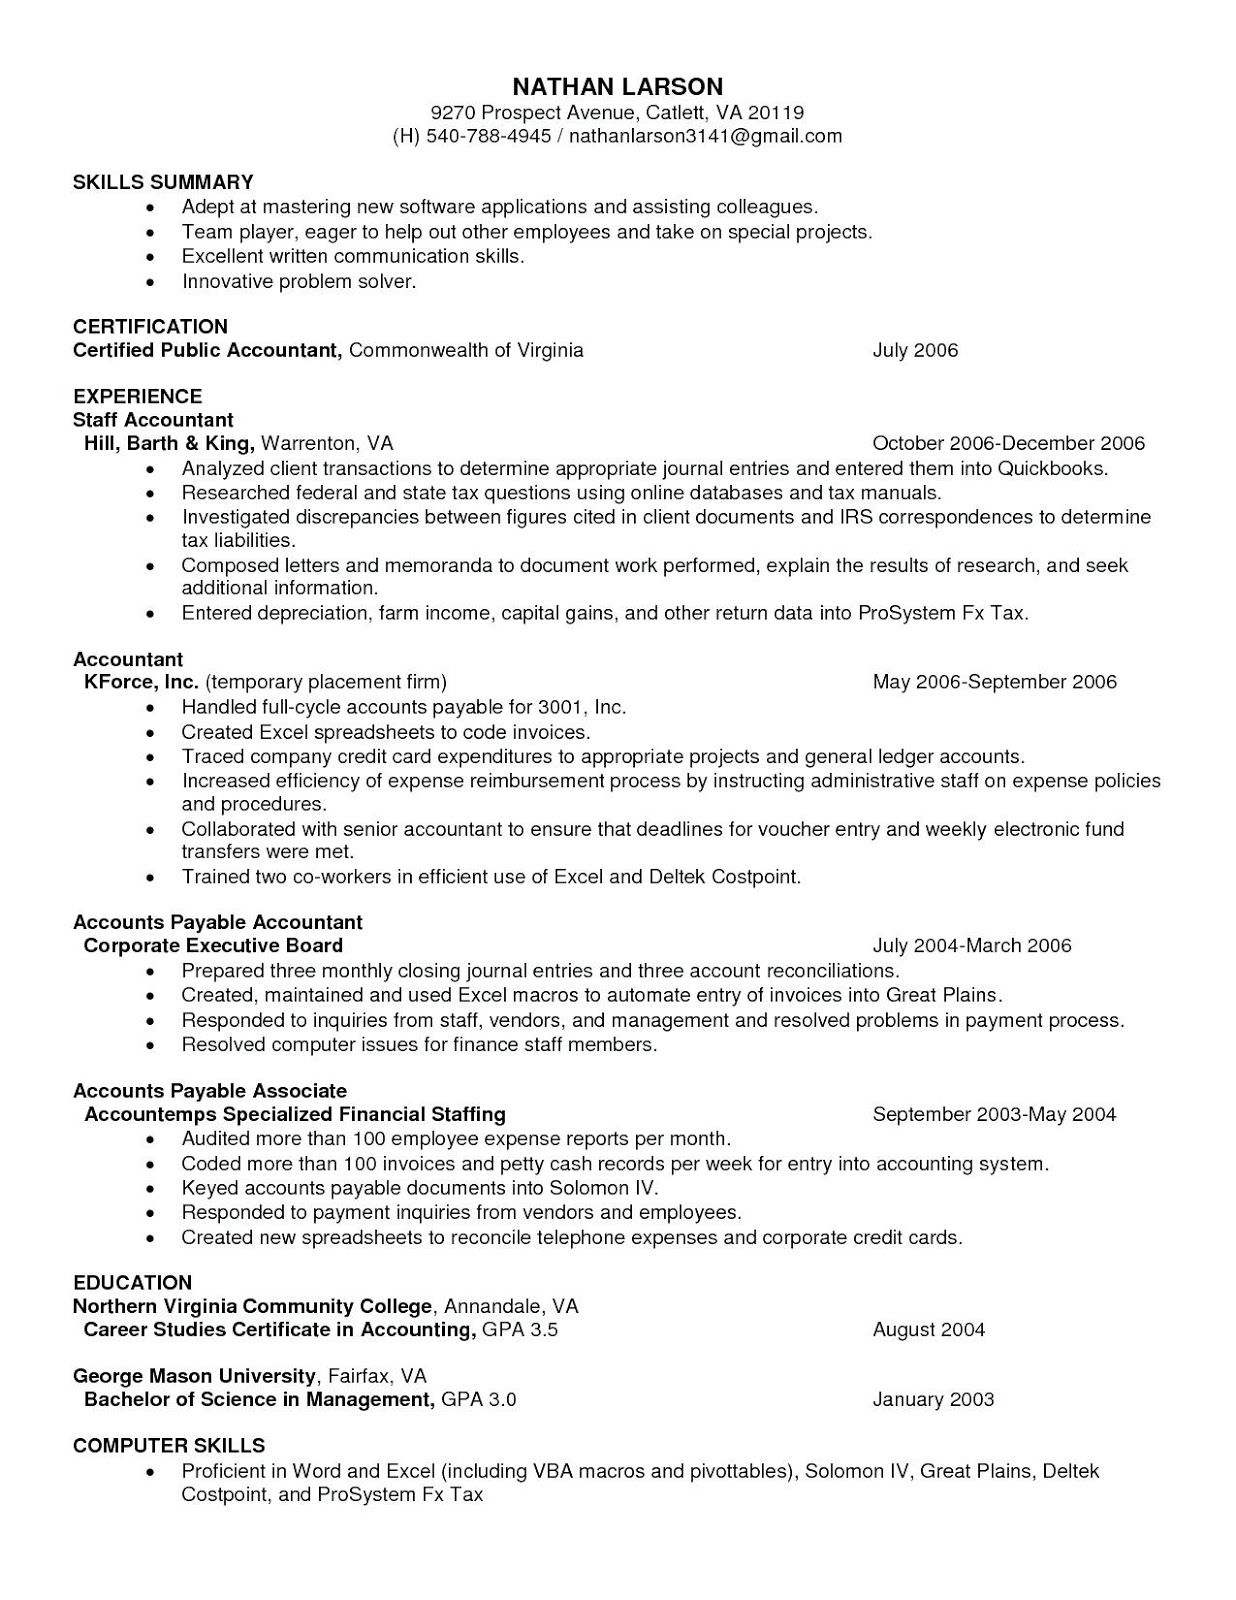 accounts payable resume format accounts payable resume format in india accounts payable resume format for bpo accounts payable resume template accounts payable resume template microsoft word accounts payable resume template free accounts payable process resume format accounts payable resume format 2019 accounts payable specialist resume format accounts payable manager resume format accounts payable executive resume format